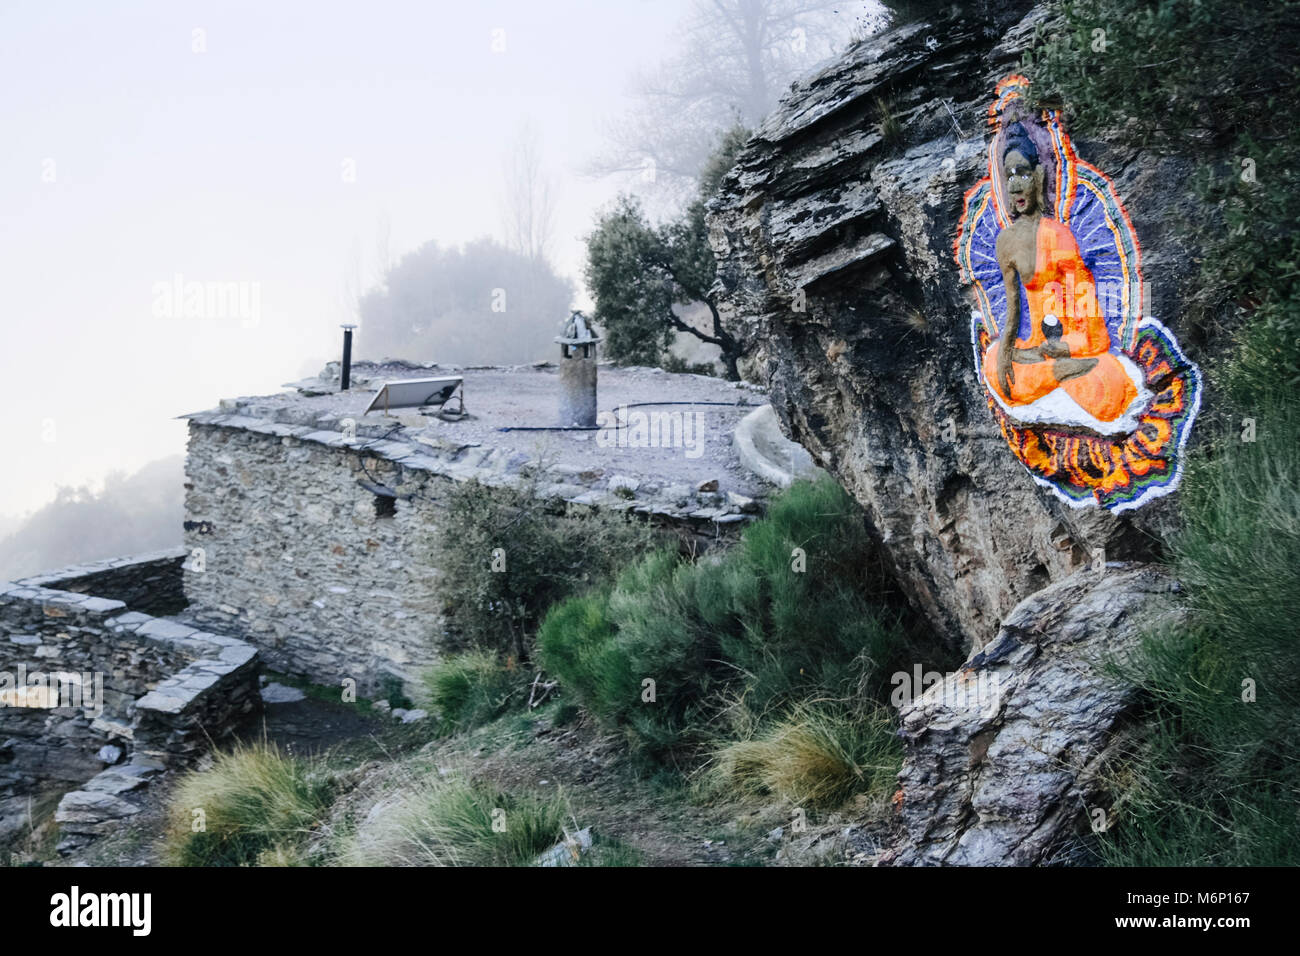 Las Alpujarras, Sierra Nevada, Granada province, Andalusia, Spain : Buddha rock carving and meditation house in - Stock Image